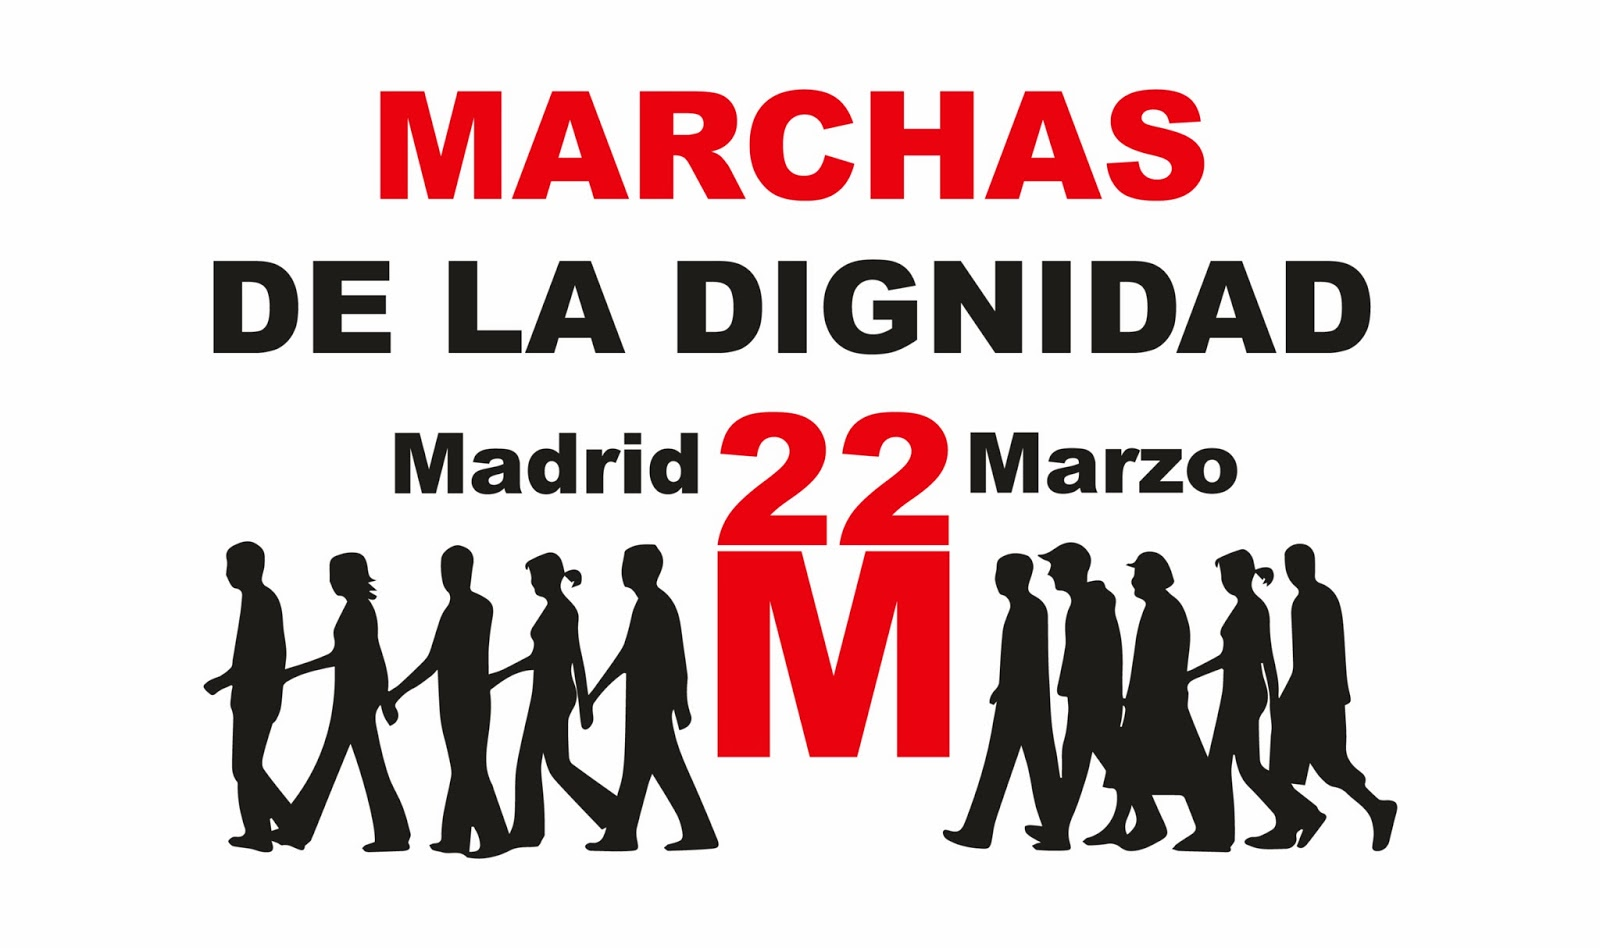 Despite Effort's to Undermine and Discredit #22M Mobilizations in Madrid, the Fight Carries On